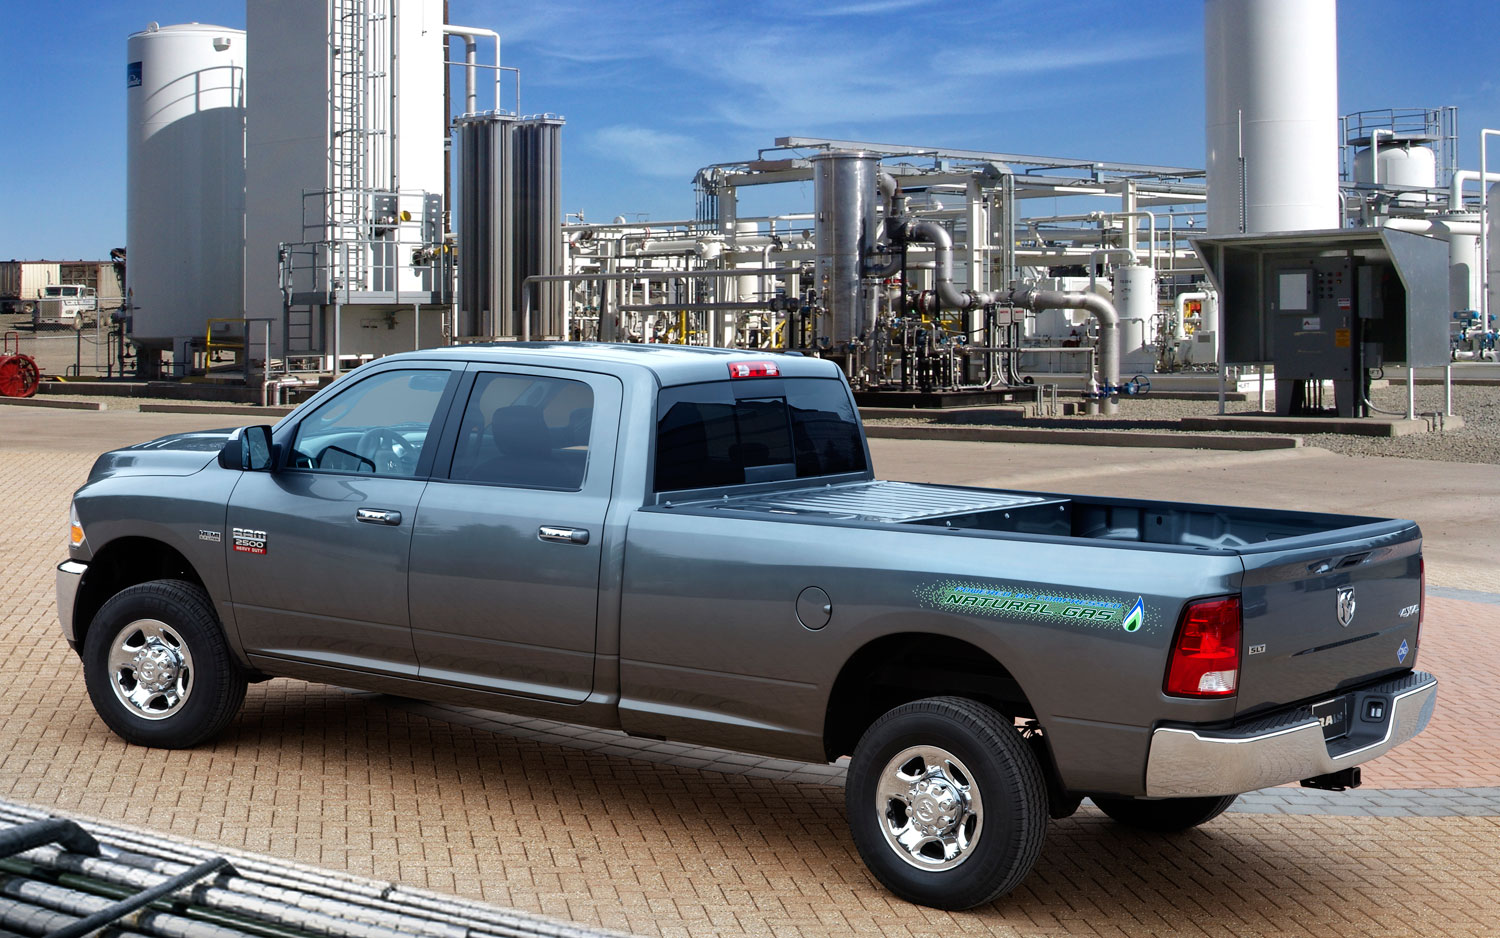 Ram 2500 Heavy Duty CNG Pickup 41